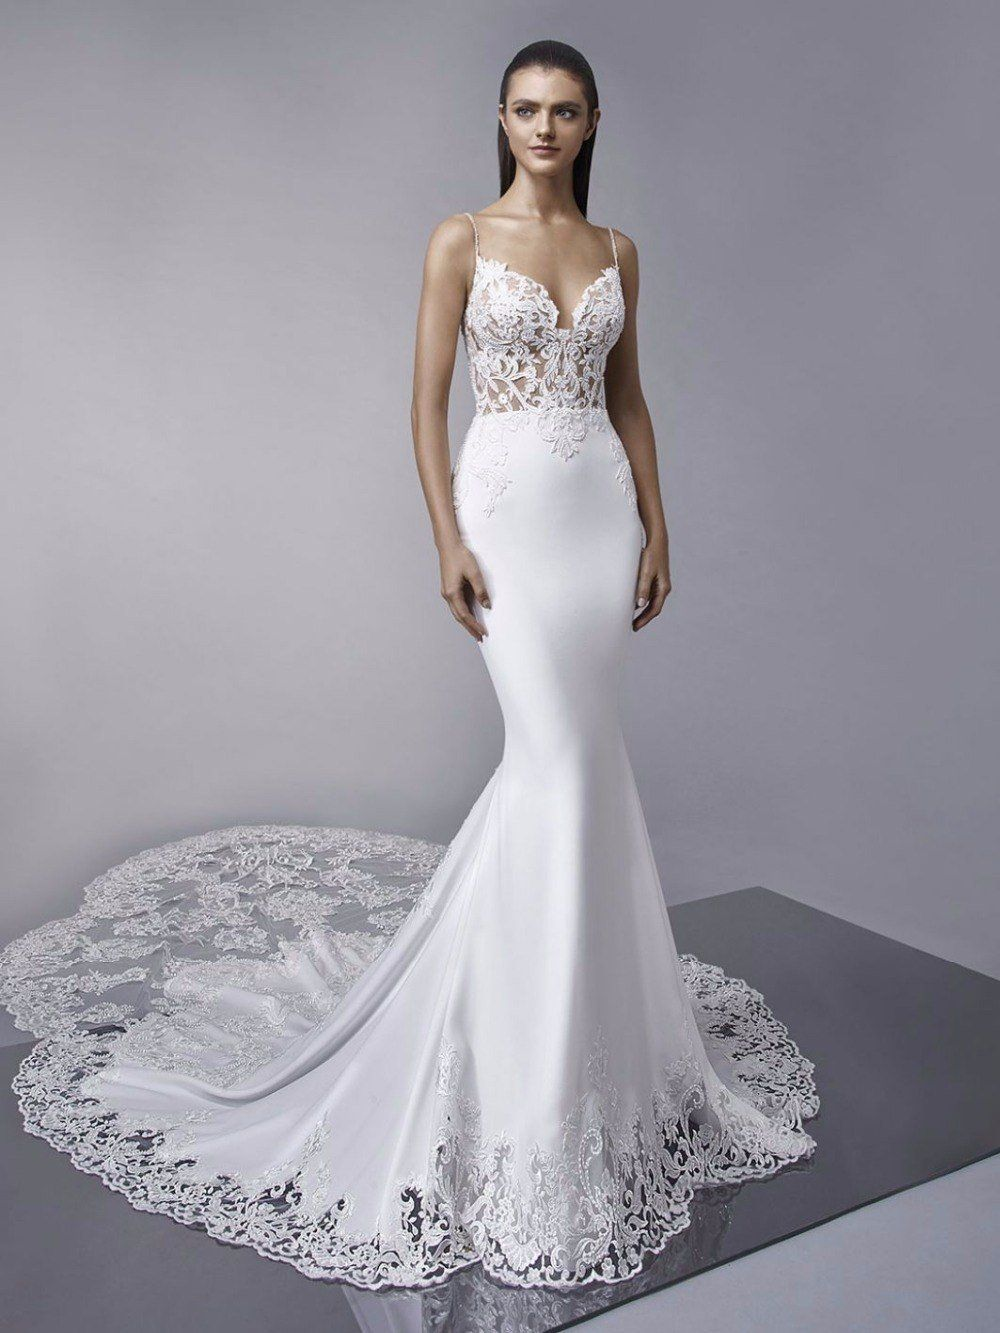 Royal train mermaid wedding dresses lace appliques boho wedding